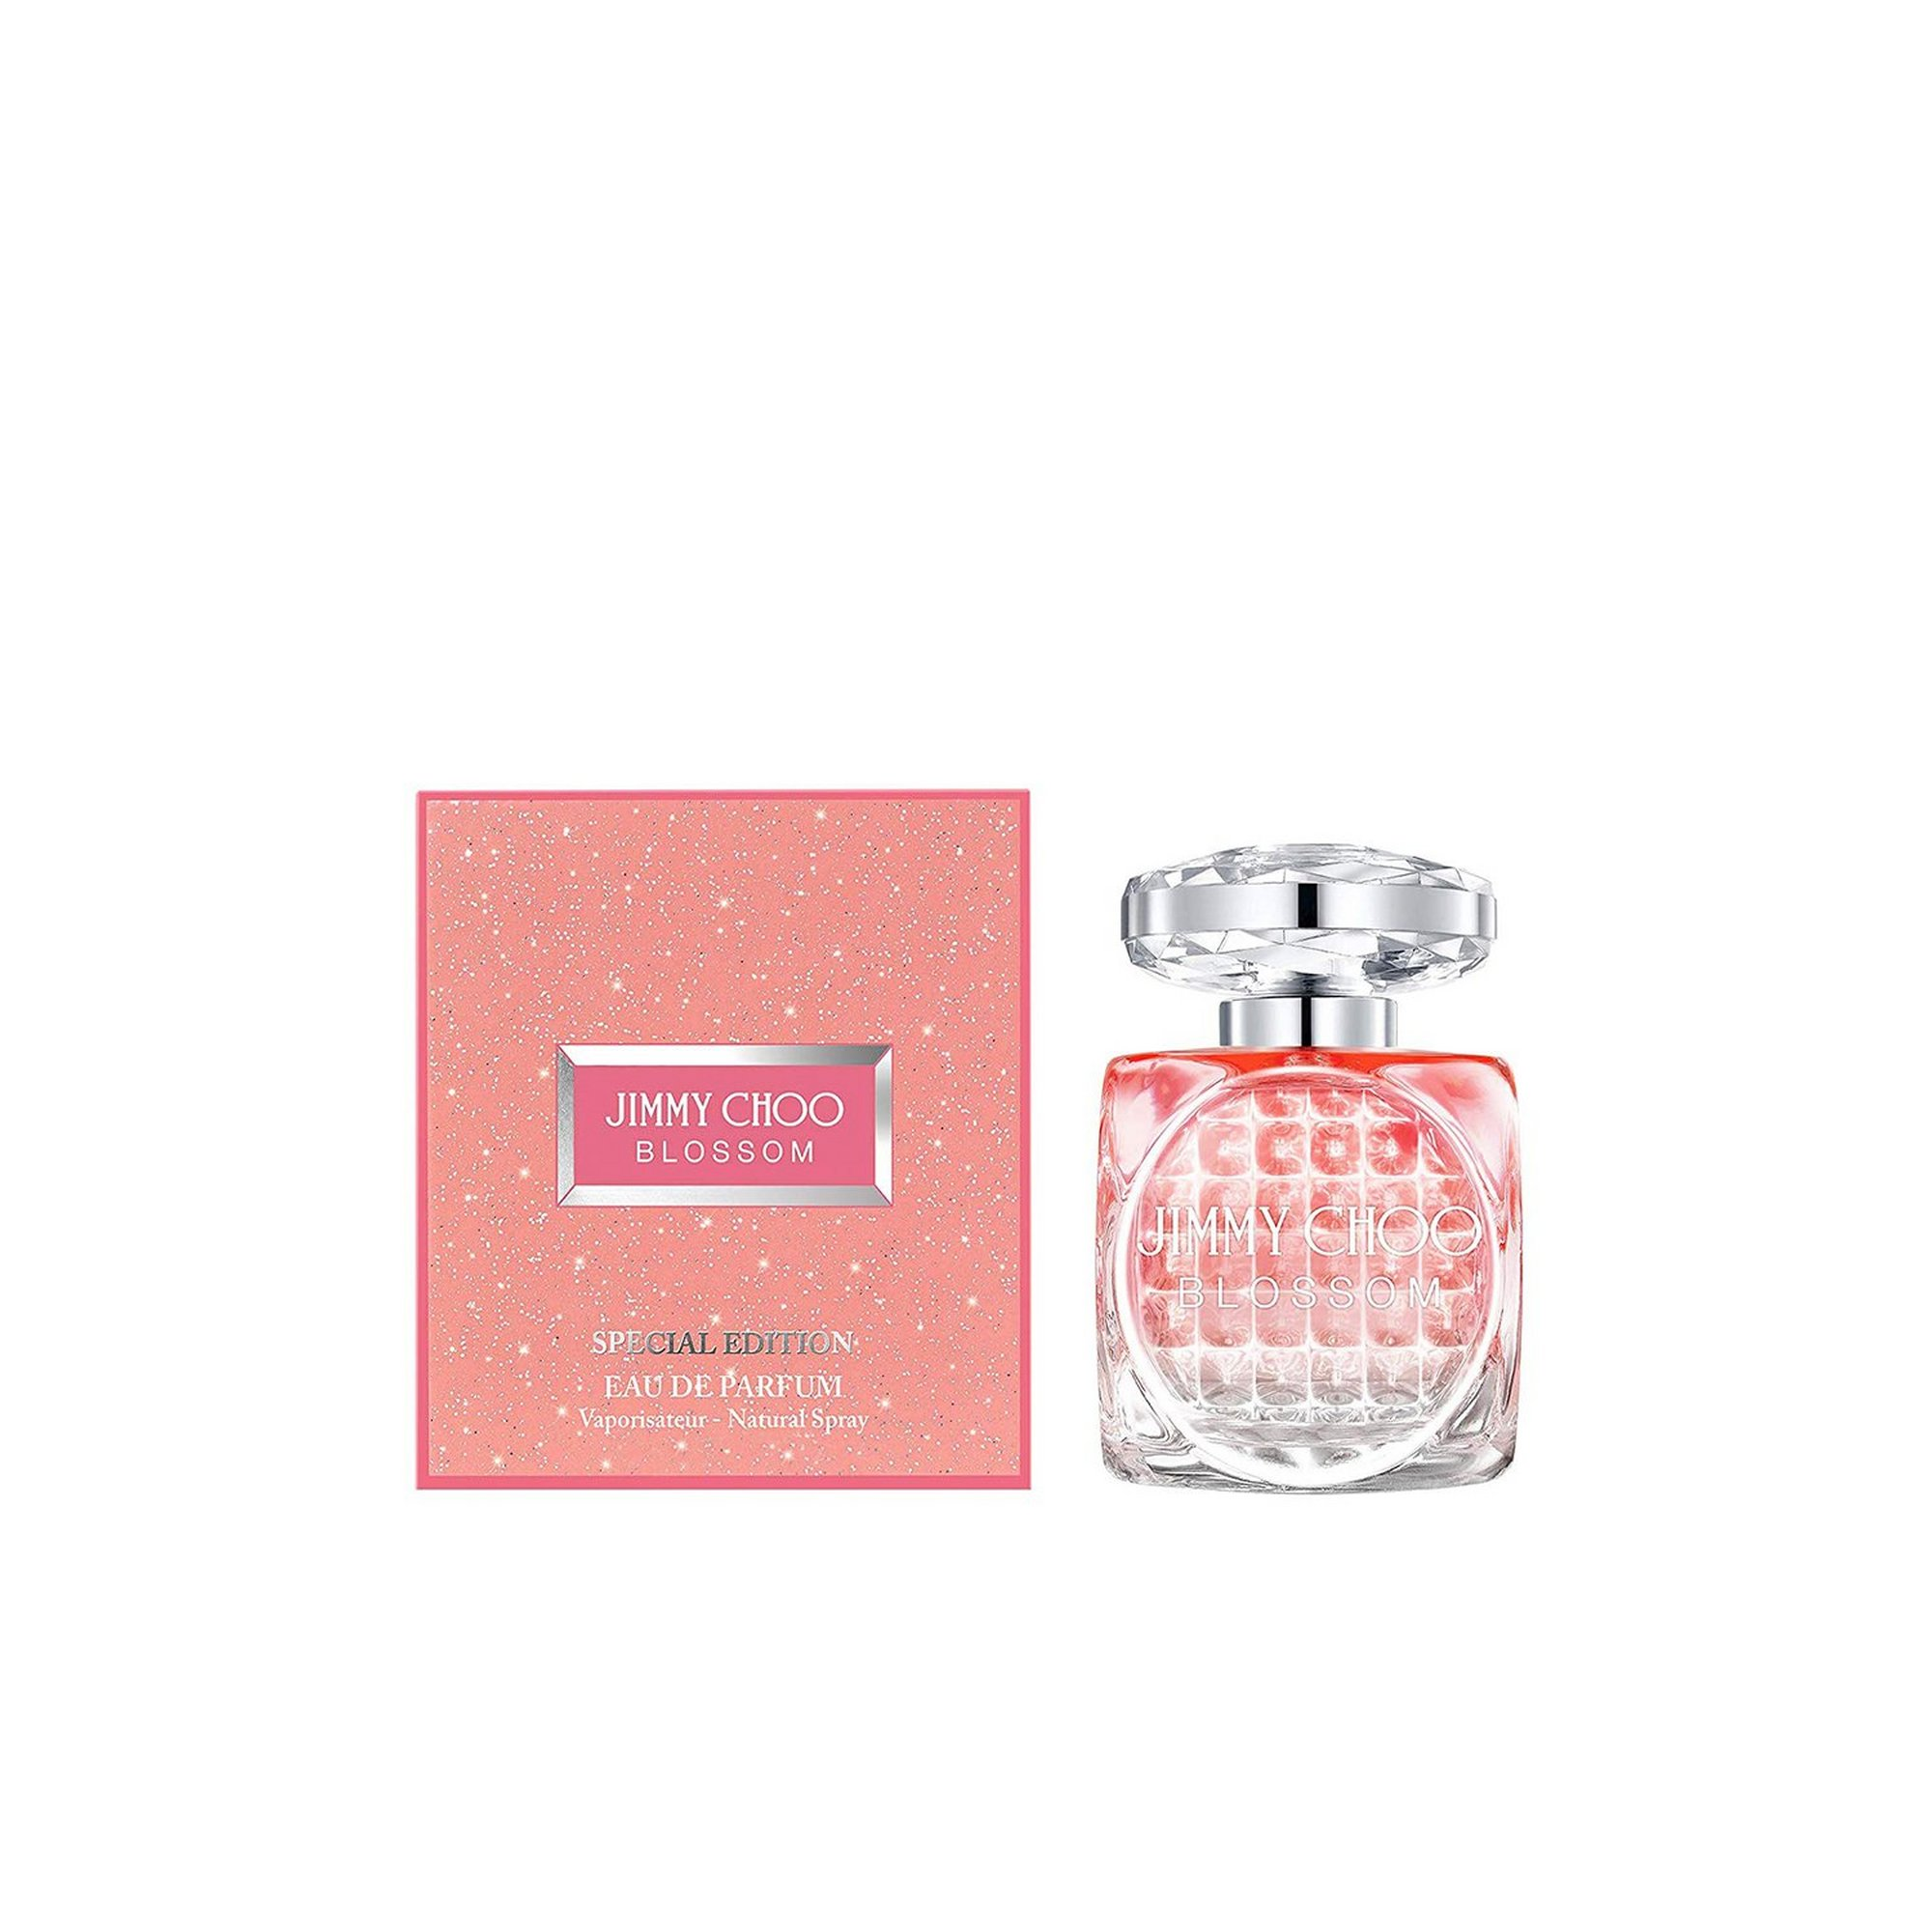 Image of Jimmy Choo Blossom Special Edition EDP